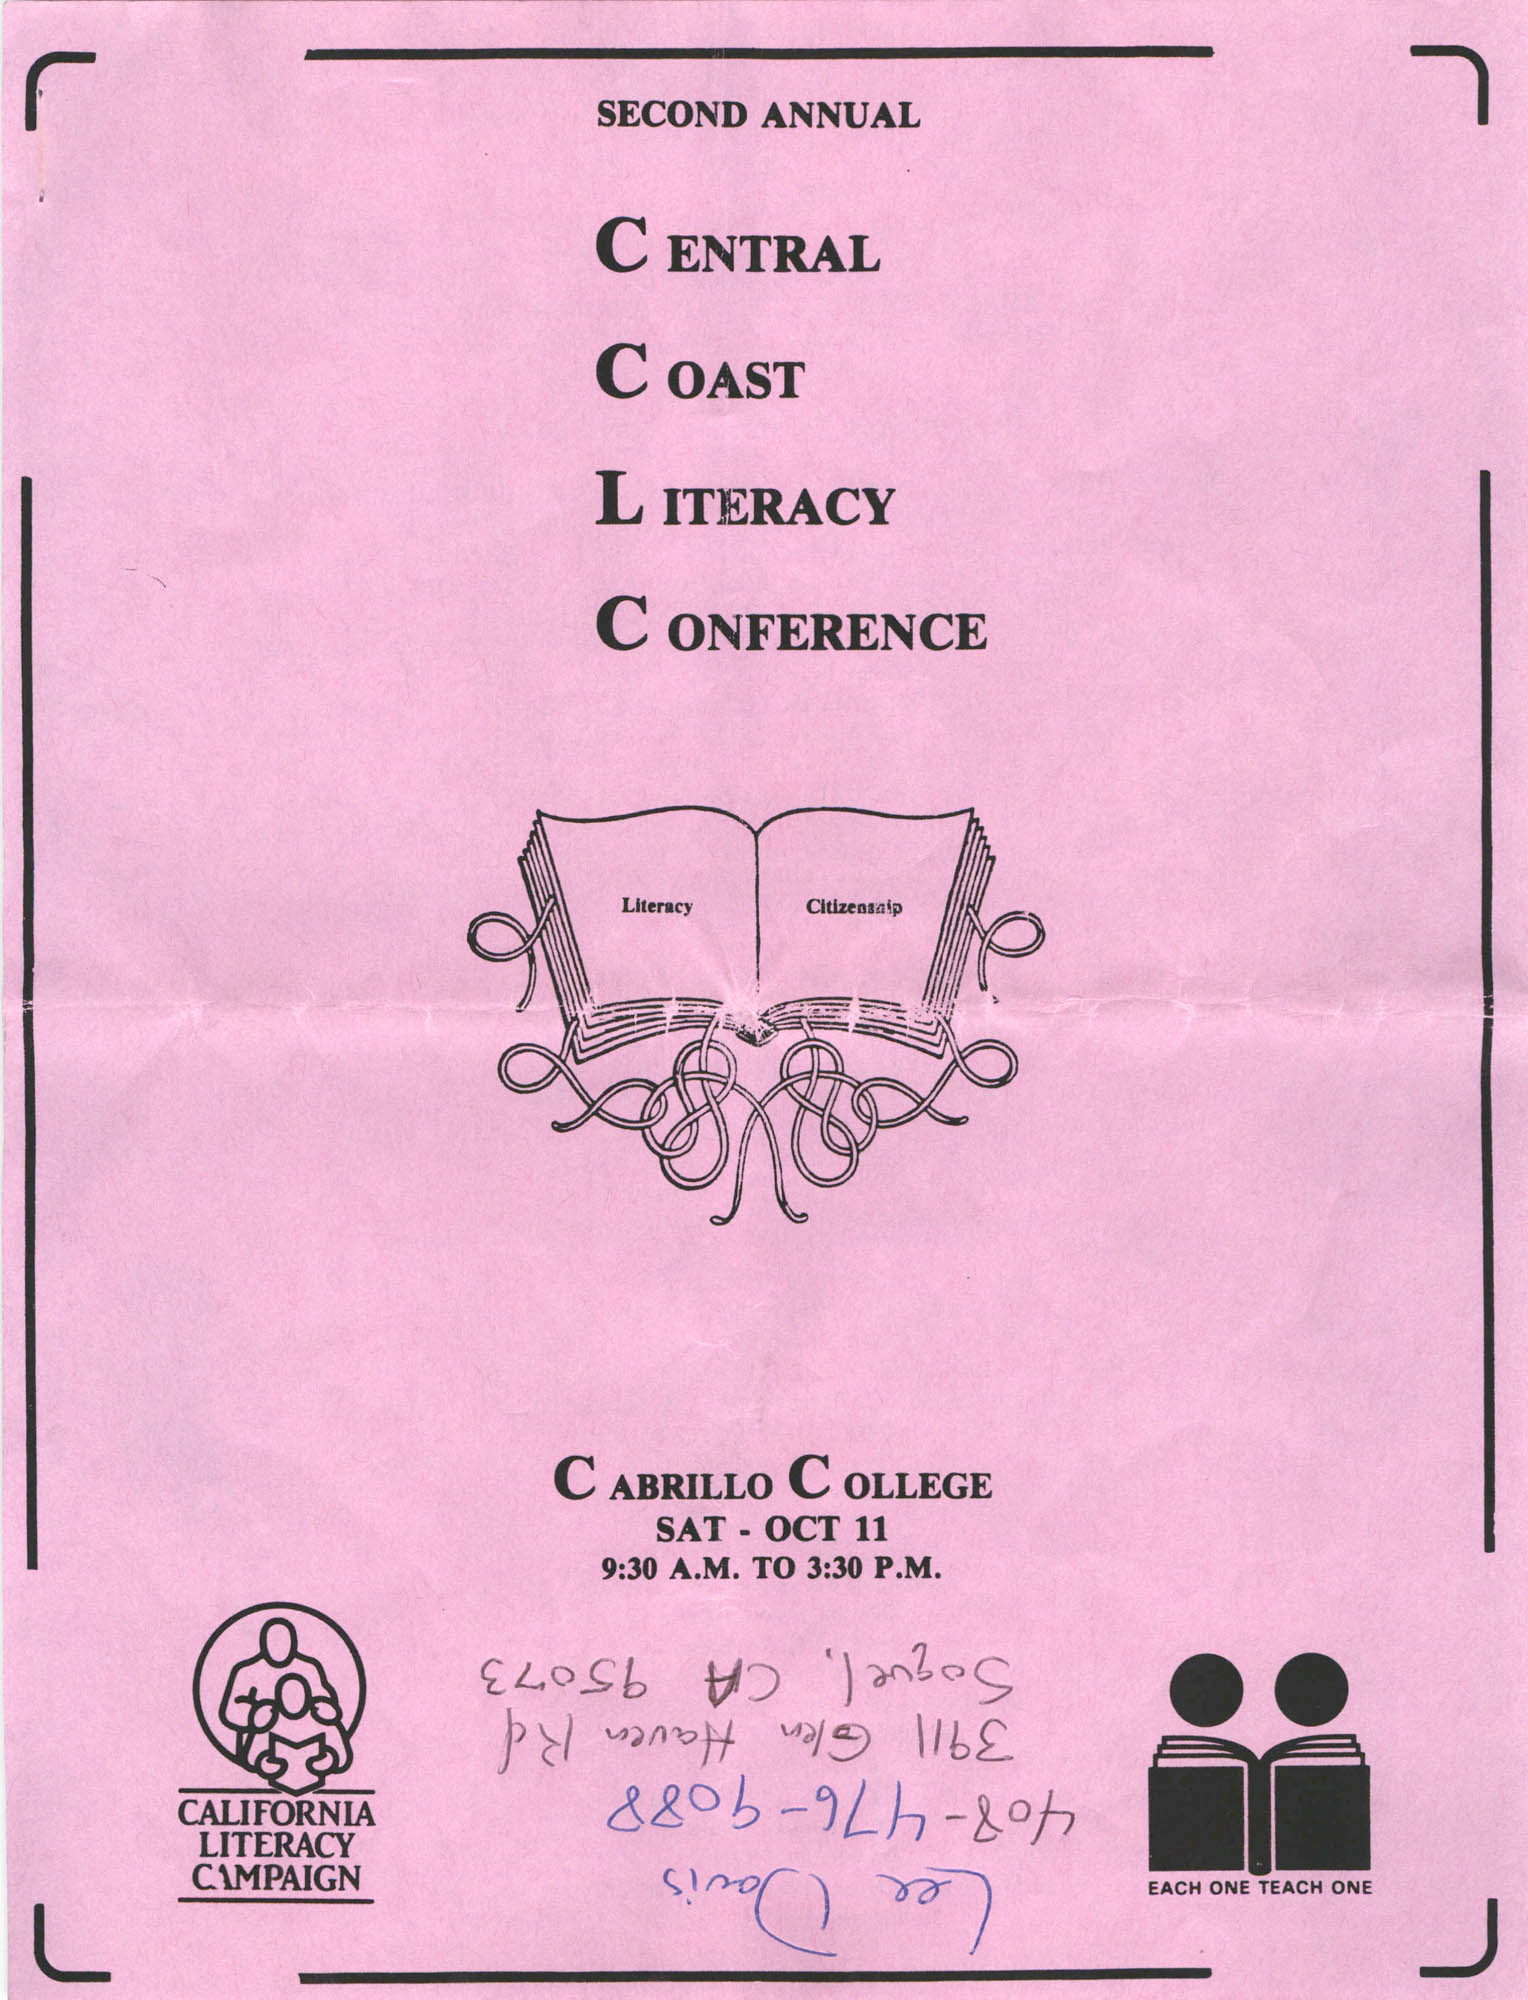 Second Annual Central Coast Literacy Conference Program and Schedule of Events, October 11, 1986